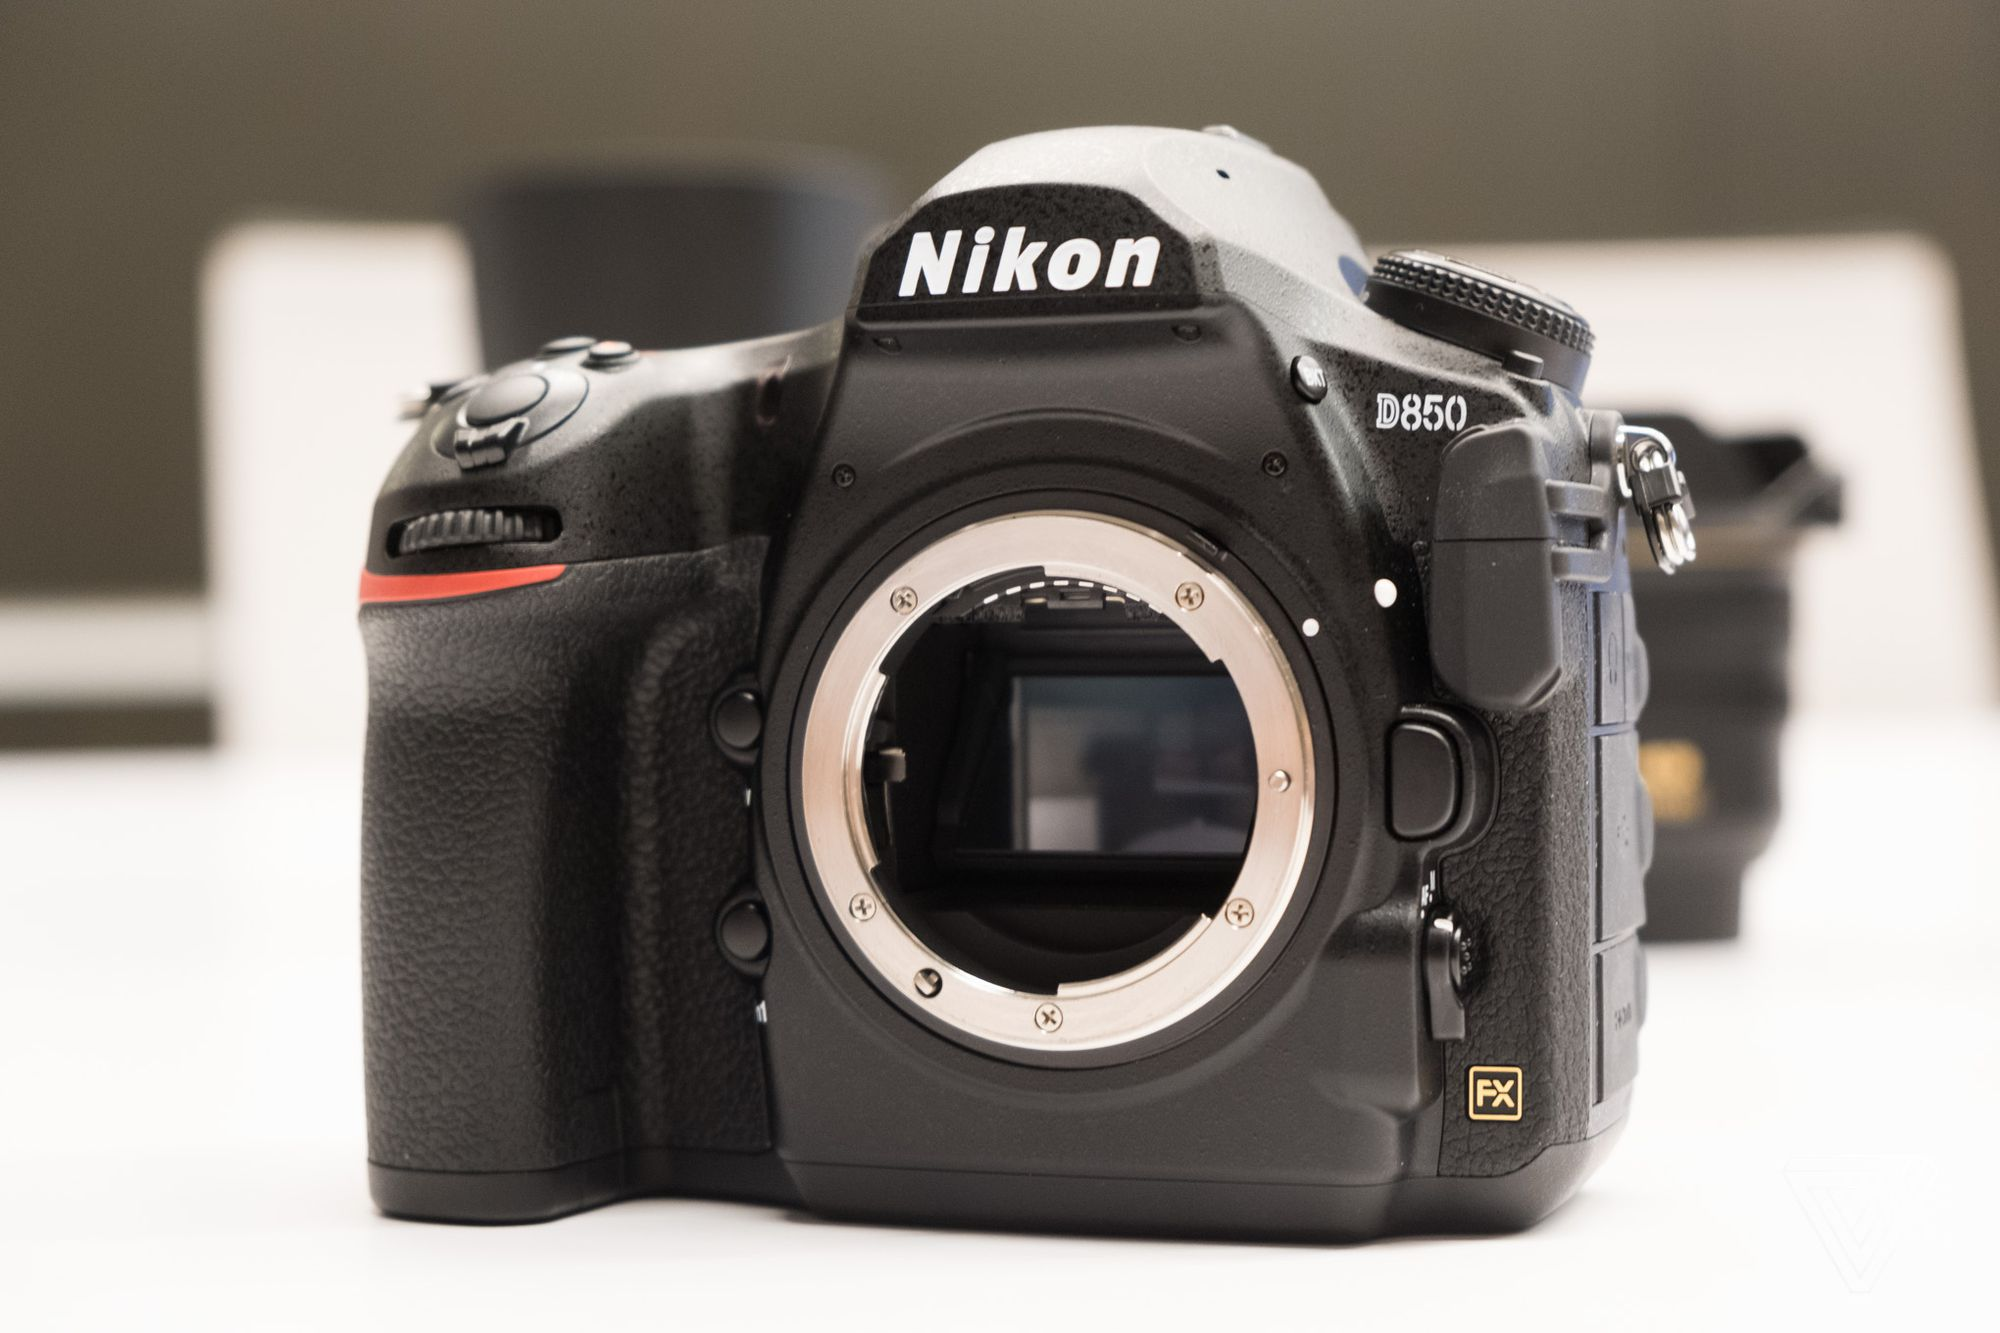 Nikon D850 Firmware Version 1 03 Now Released ! | Nikon